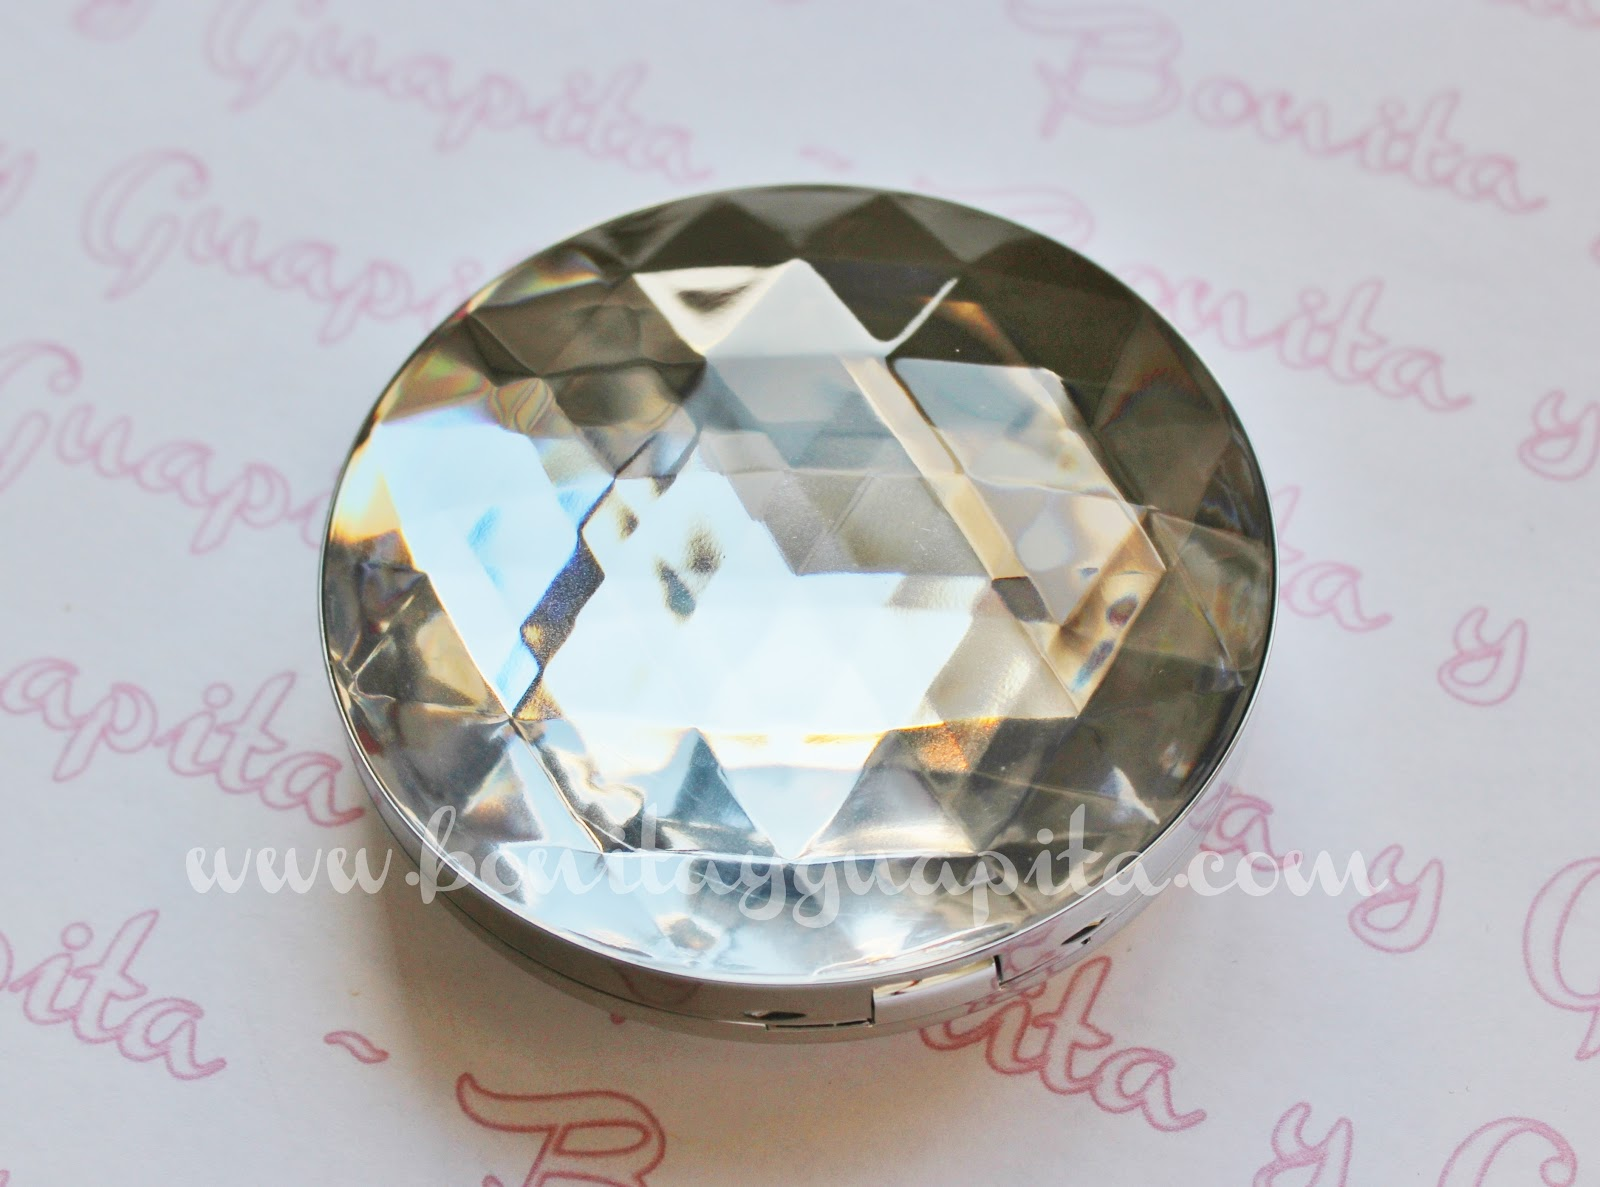 etre belle diamond sensation powder